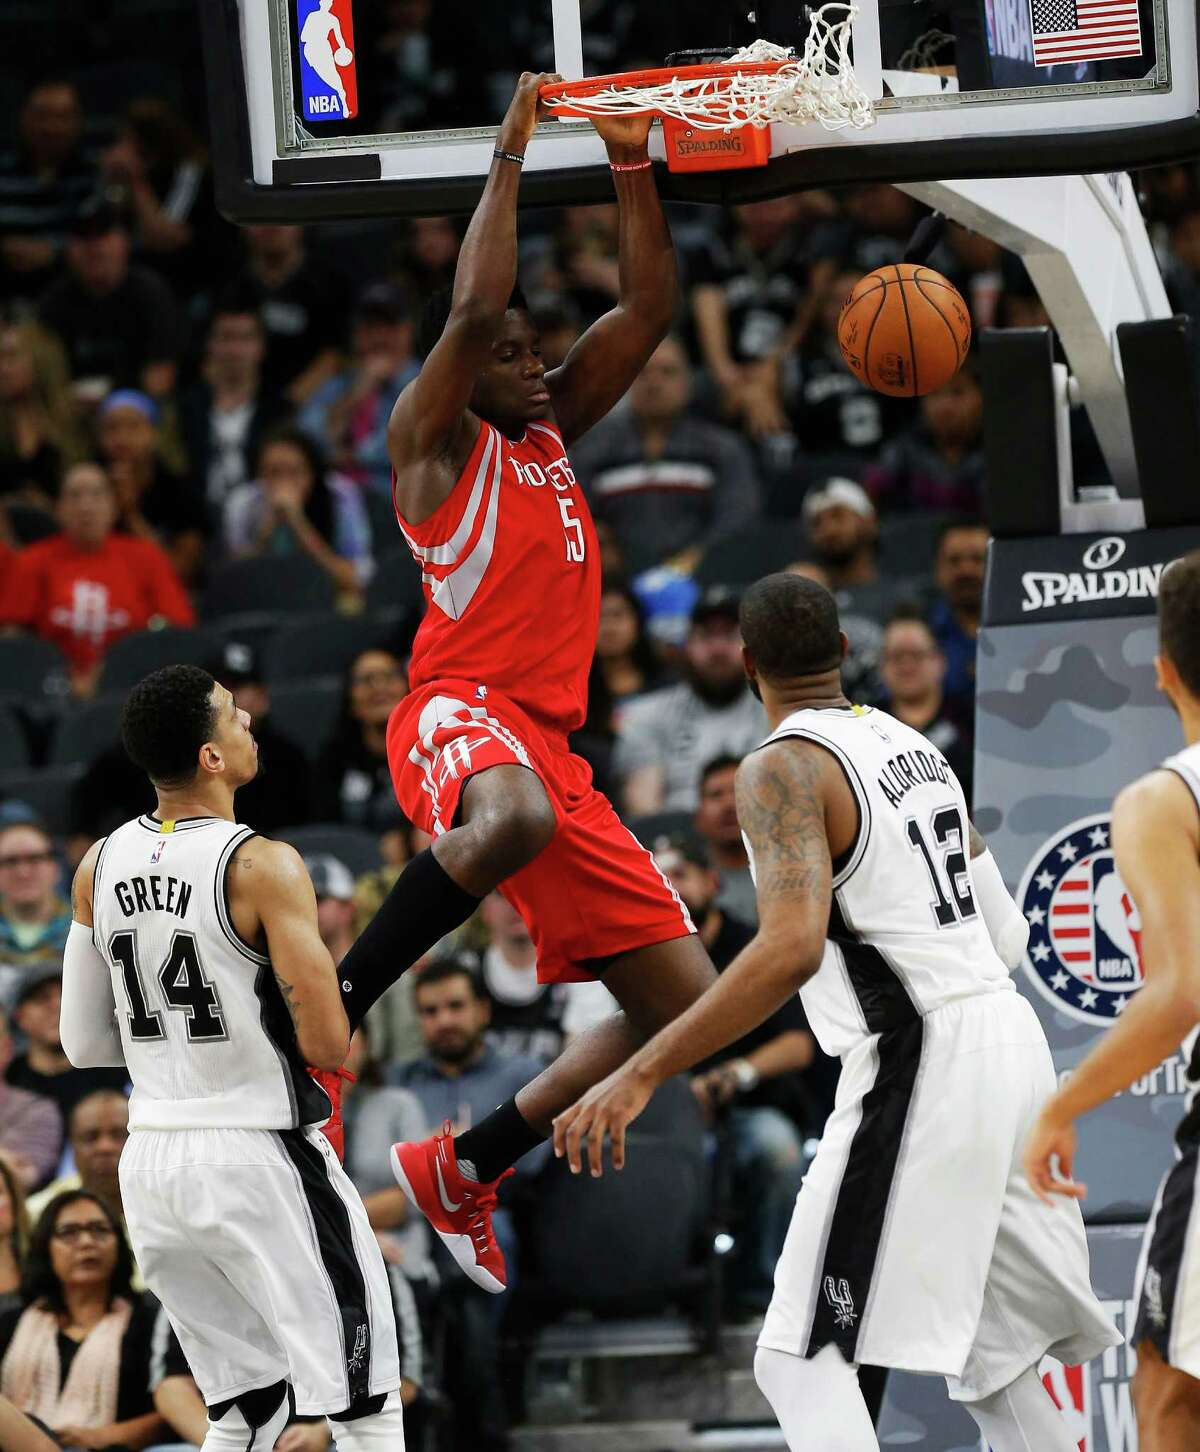 Houston Rockets' Montrezl Harrell (05) dunks over Spurs' Danny Green (14) and LaMarcus Aldridge (12) during their game at the AT&T Center on Wednesday, Nov. 9, 2016.